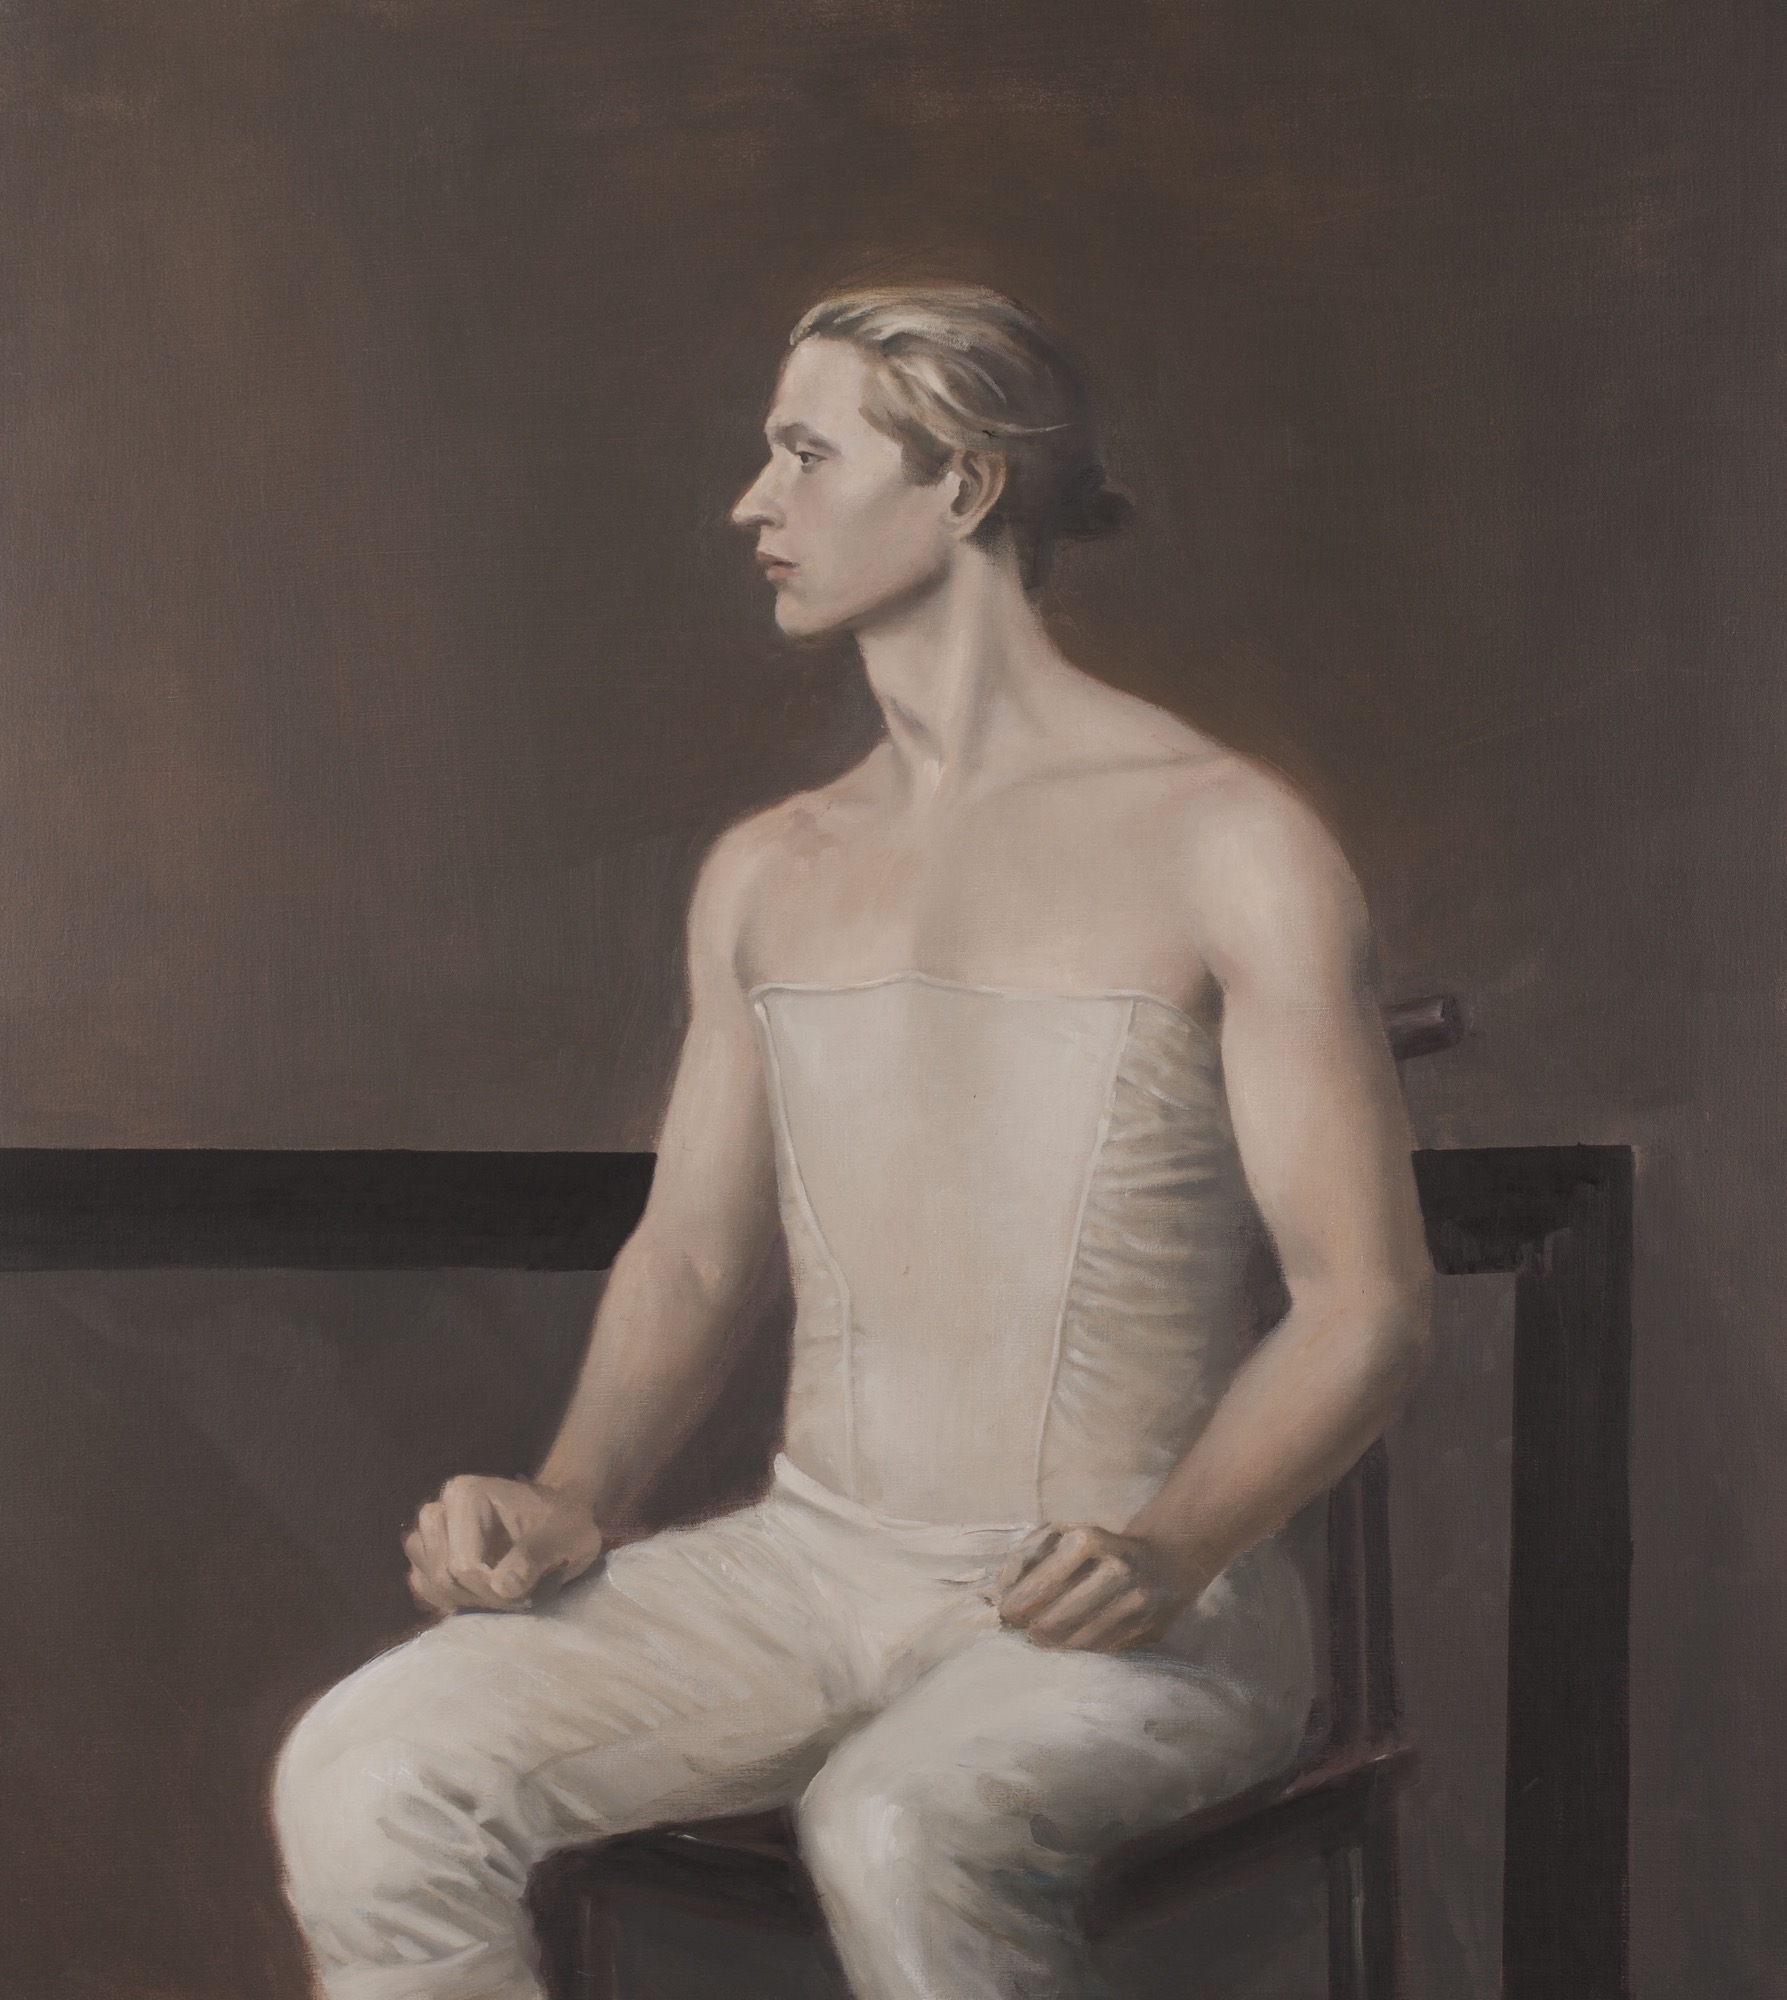 Raymond Han    Portrait of Christopher Schaldenbrand in costume , 2001  Oil on canvas  40 x 36 inches  101.6 x 91.4 cm